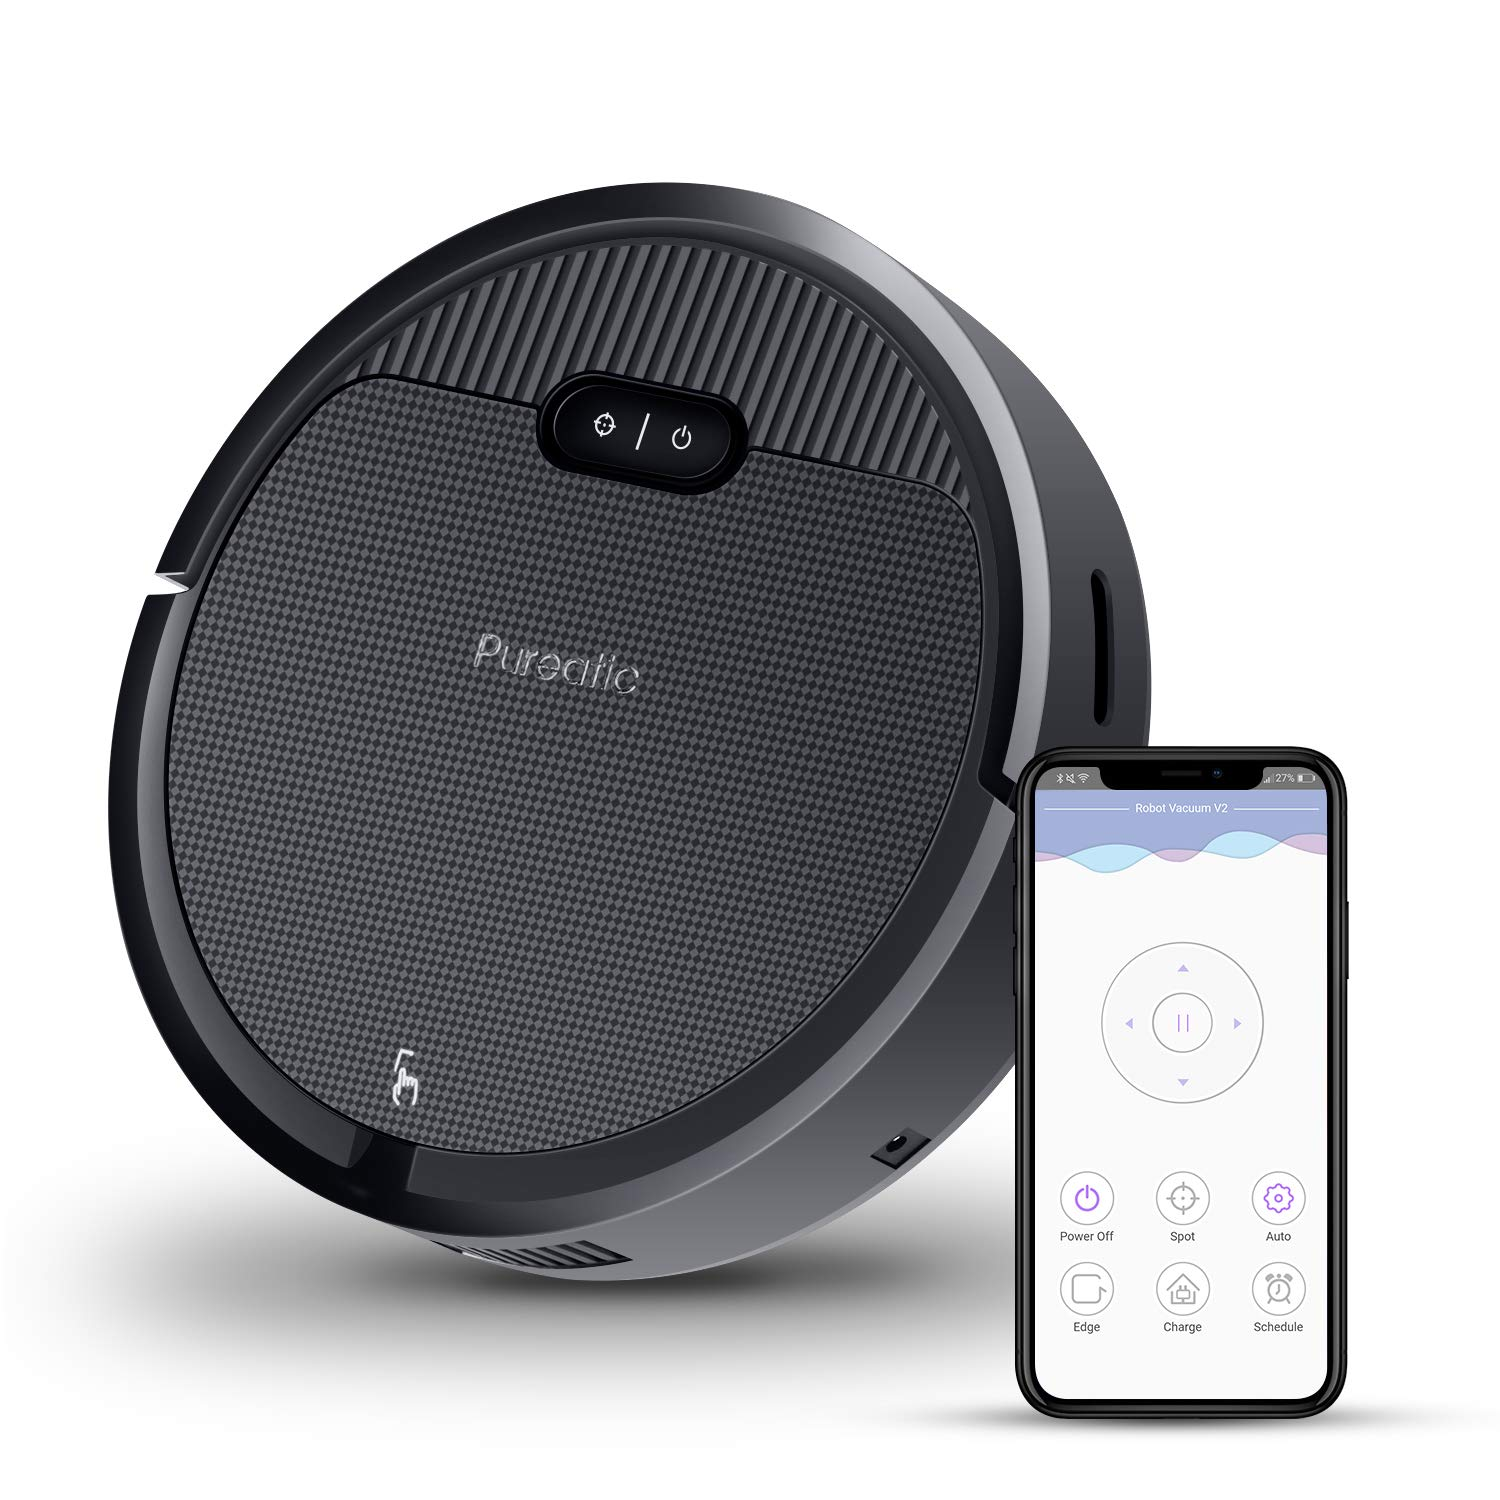 Premium Automatic Robot Vacuum Cleaner, 1500Pa Powerful Suction, 650ML Large Dust Box, Smart App Control/Self-Charging/Anti-Collision, Good for Pet Hair, Hard Floor and Low Pile Carpets (Black) by lexvss